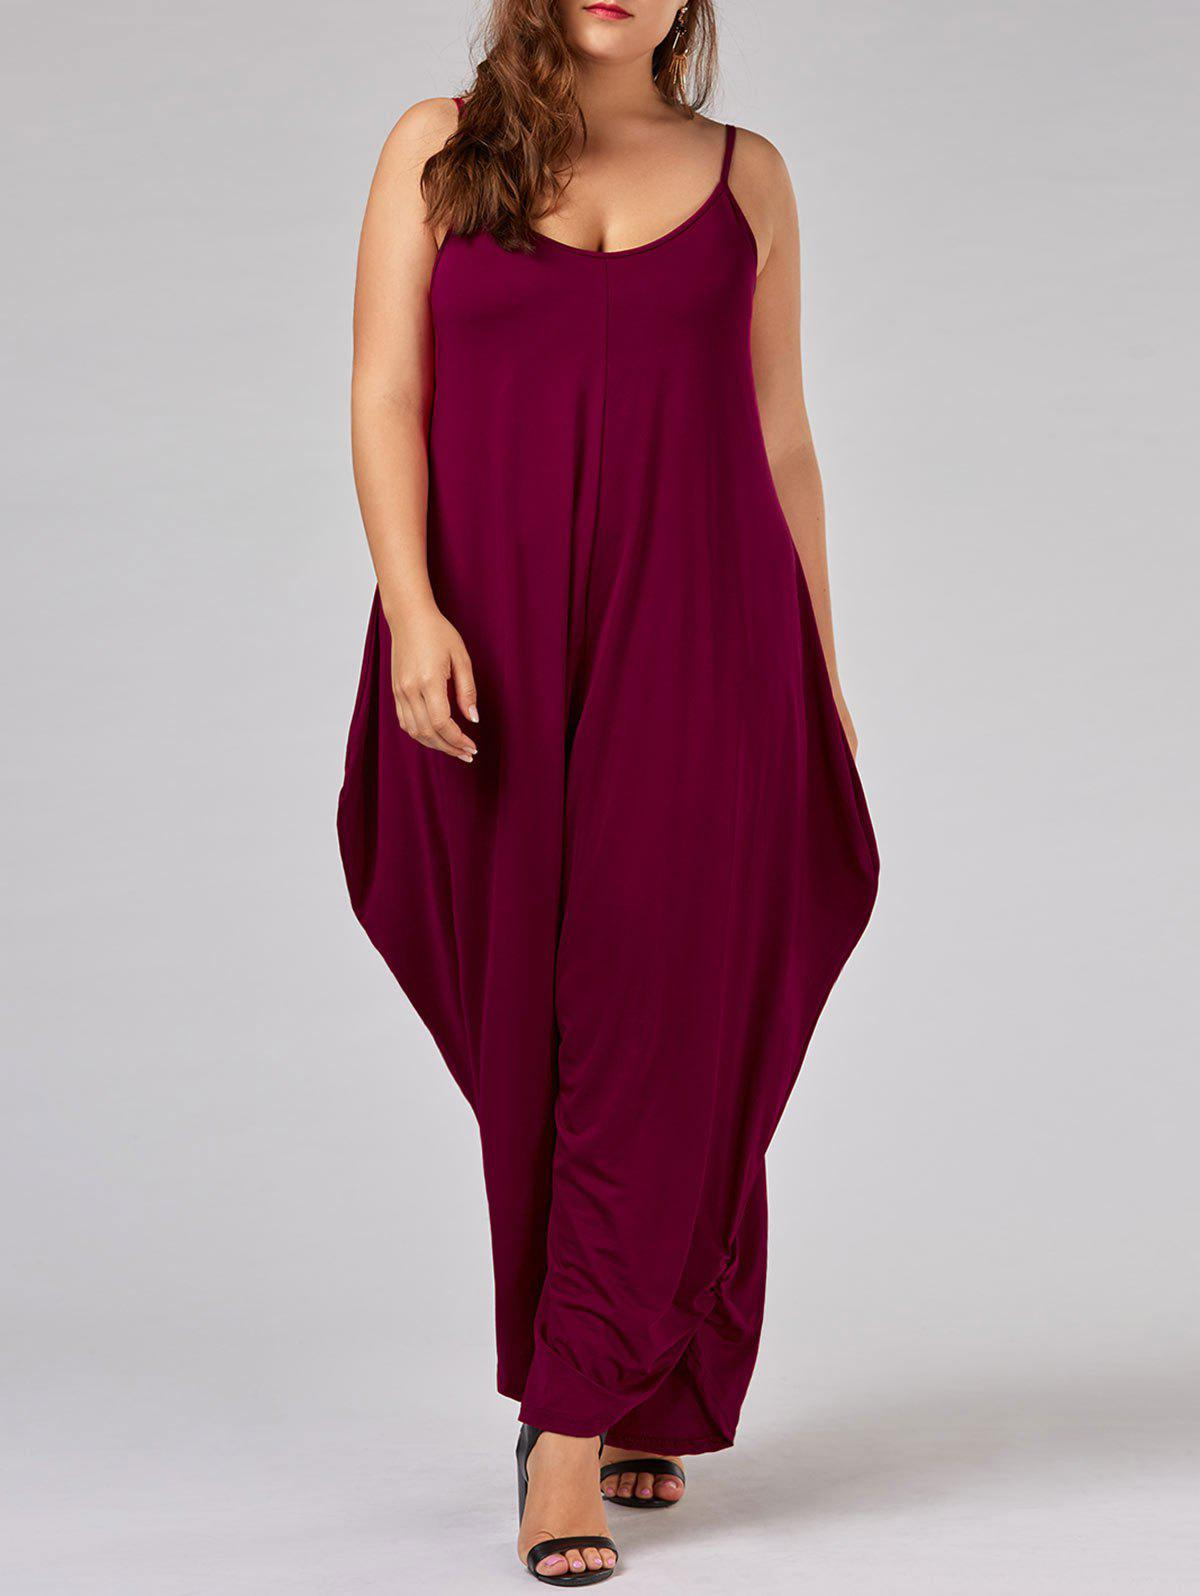 Plus Size Spaghetti Strap Baggy JumpsuitWOMEN<br><br>Size: 7XL; Color: BRIGHT RED; Style: Fashion; Length: Normal; Material: Cotton,Polyester; Fit Type: Loose; Waist Type: High; Closure Type: Elastic Waist; Pattern Type: Solid; Embellishment: Ruched; Pant Style: Harem Pants; Weight: 0.3100kg; Package Contents: 1 x Jumpsuit;